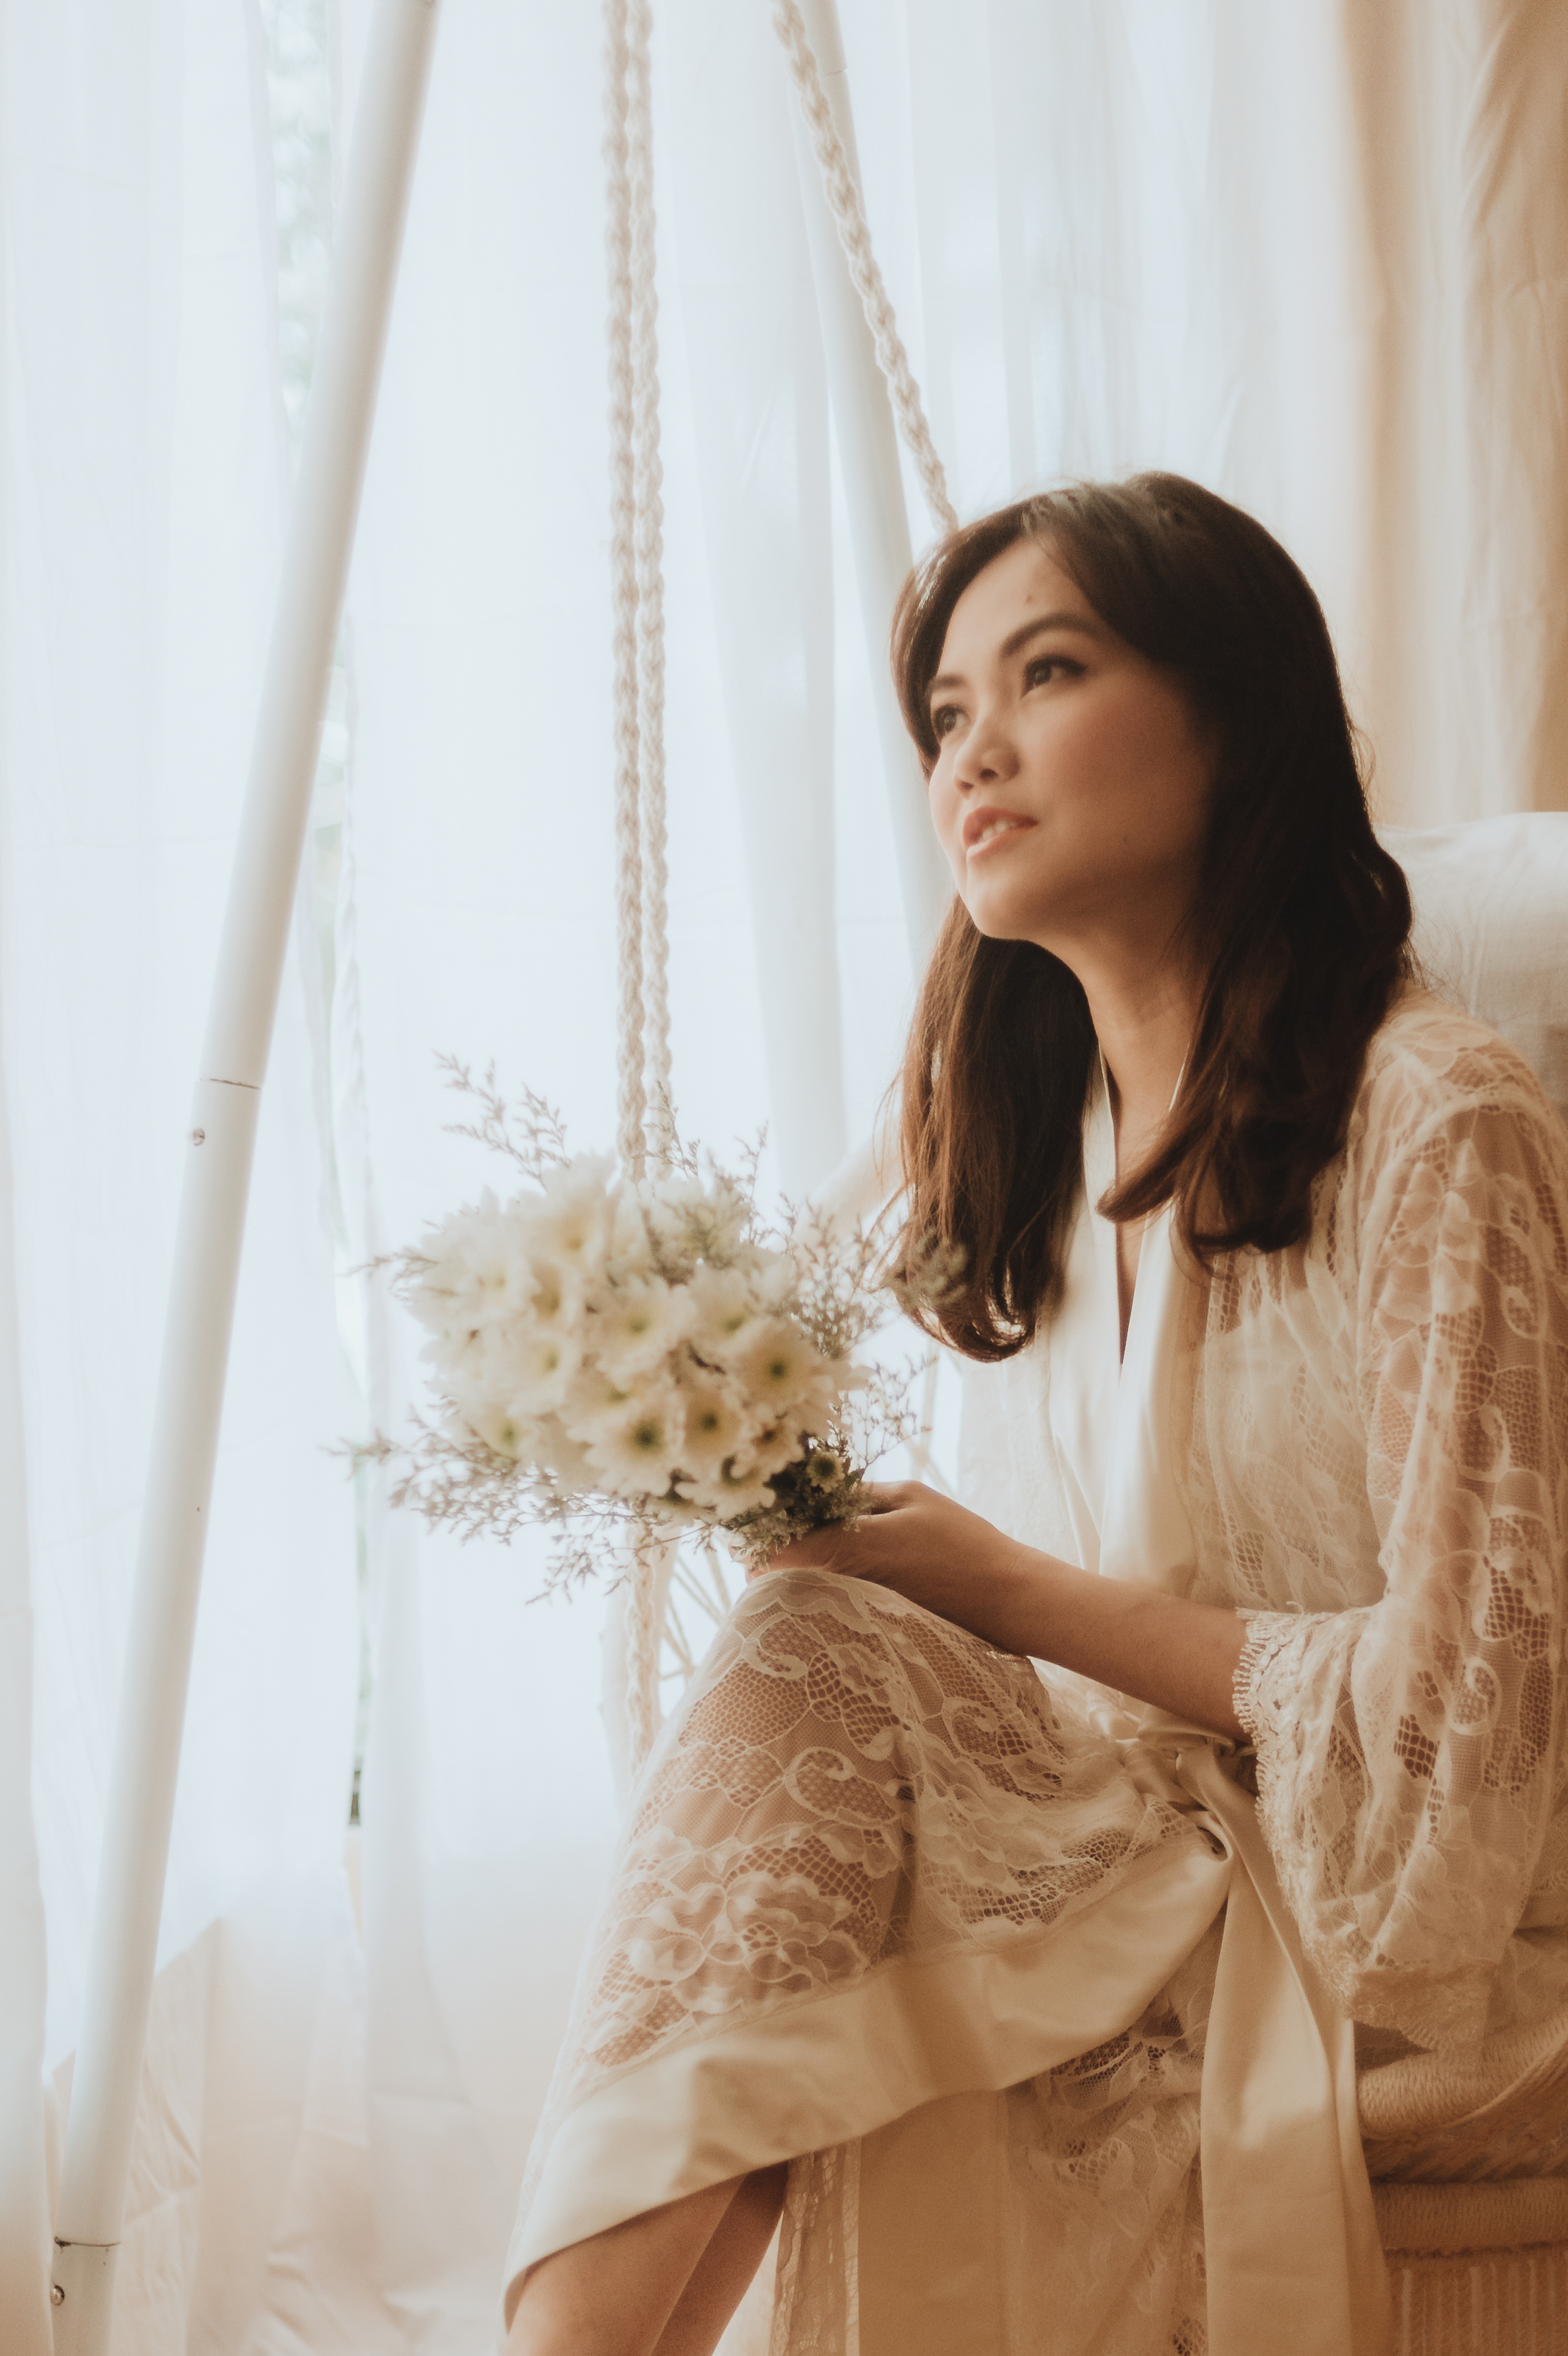 Acel captures the start of a lifelong commitment in new single